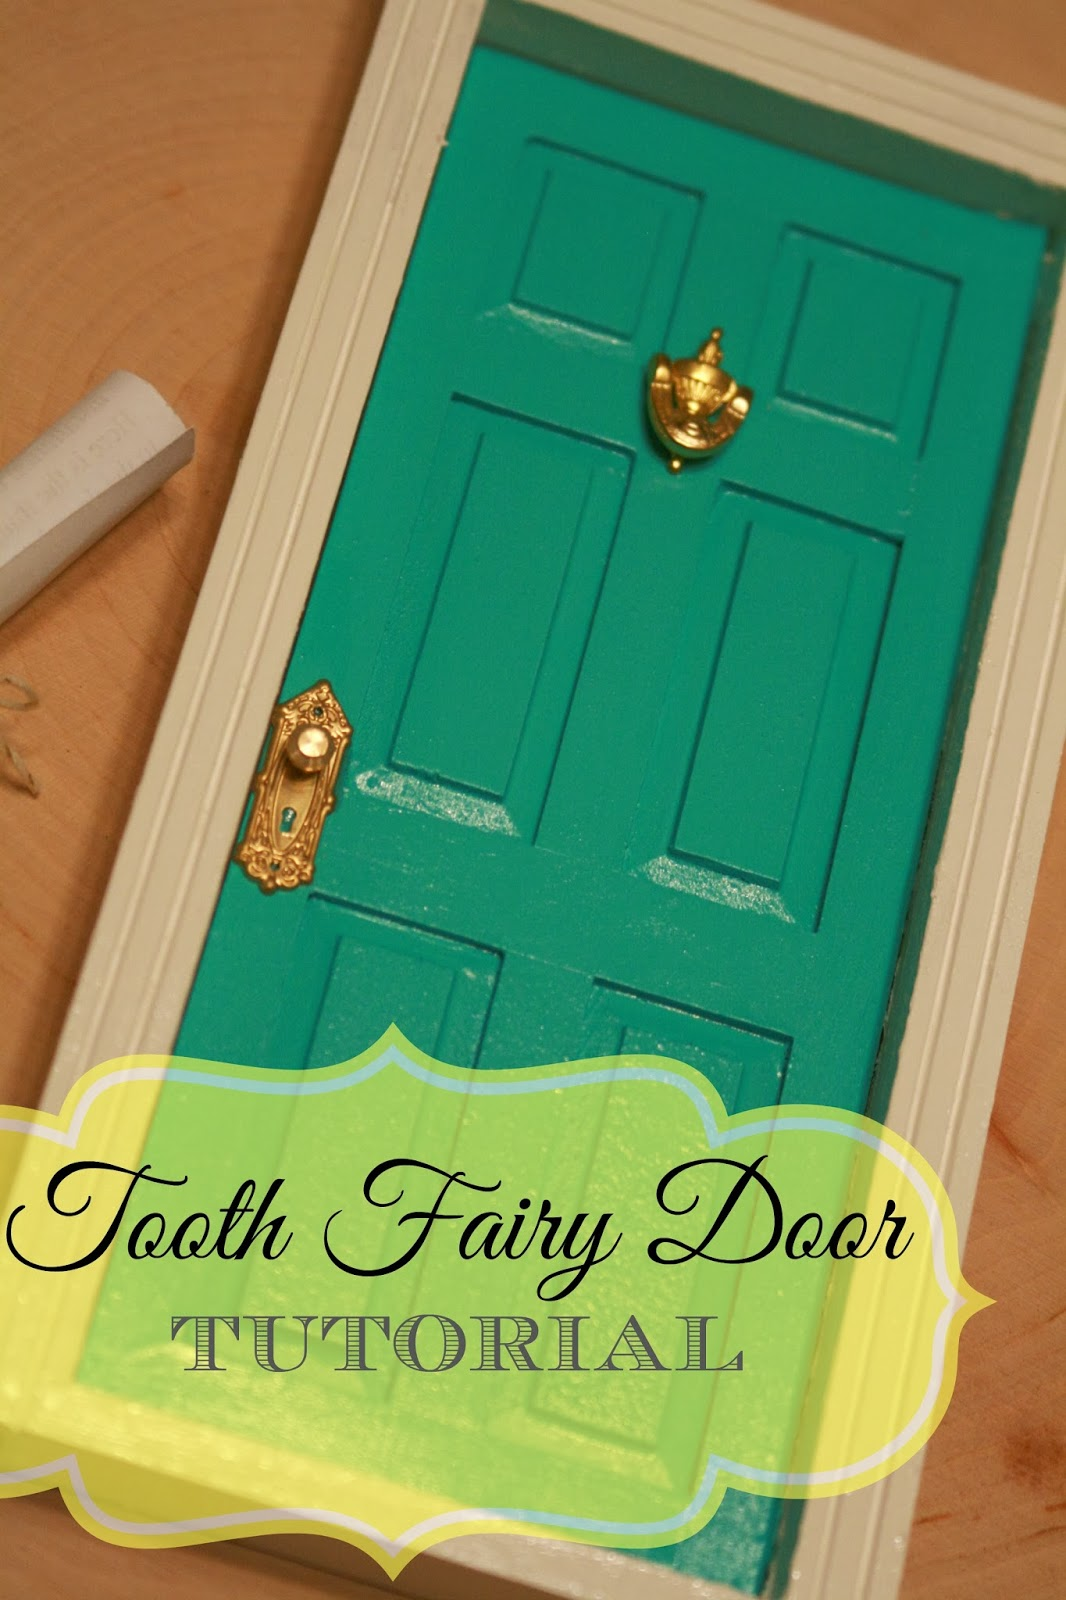 Tooth Fairy Door - Tutorial & Britches and Boots : A Place I Call Home: Tooth Fairy Door - Tutorial pezcame.com